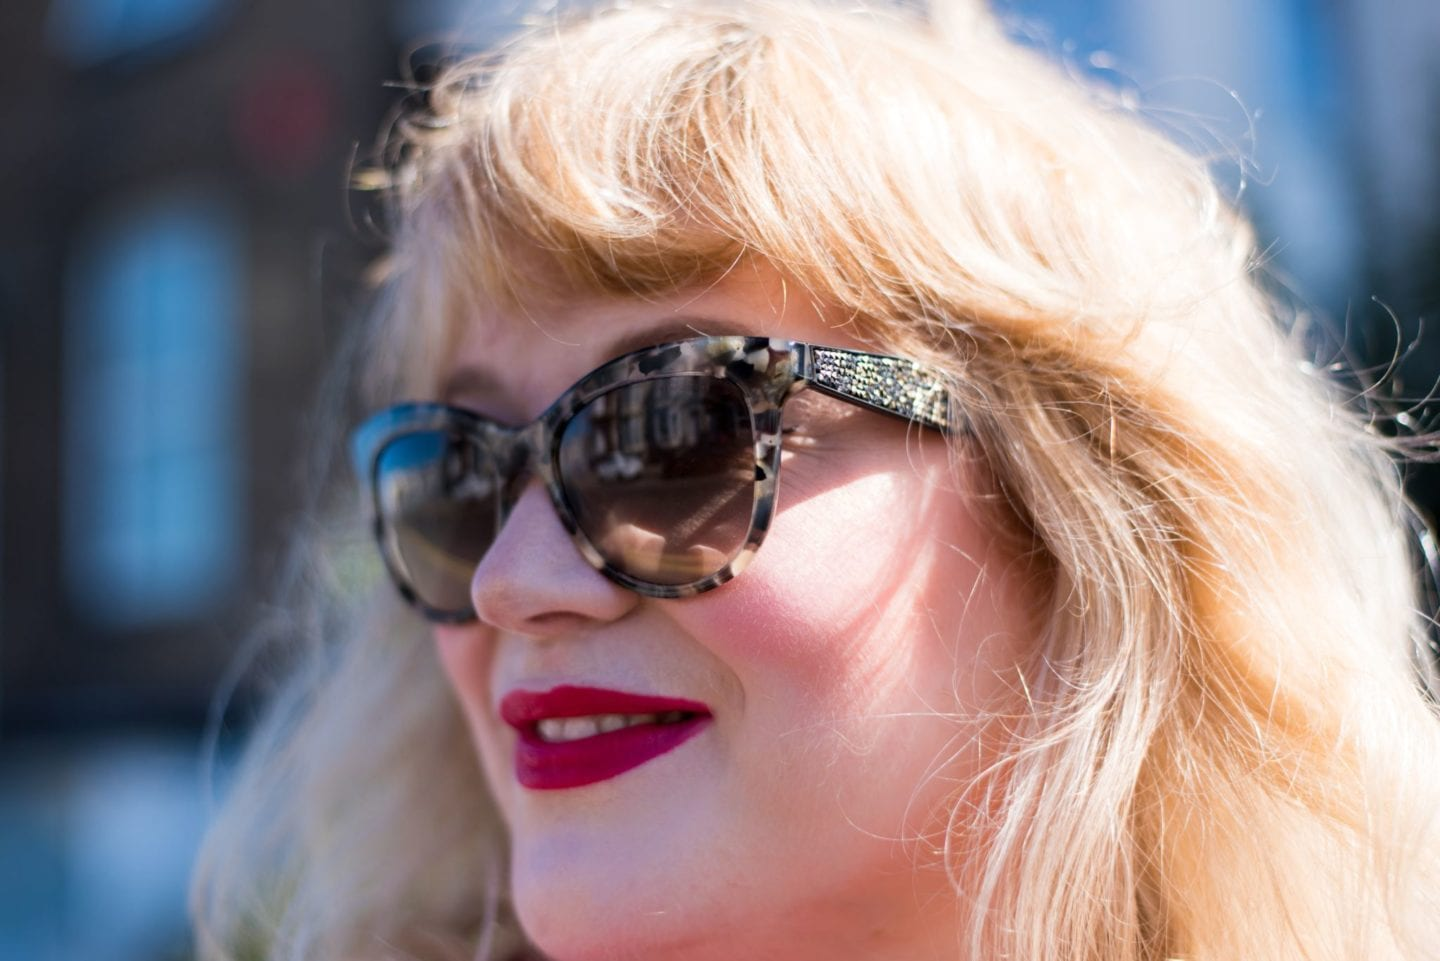 miu miu crystal sunglasses in the sun sparkles